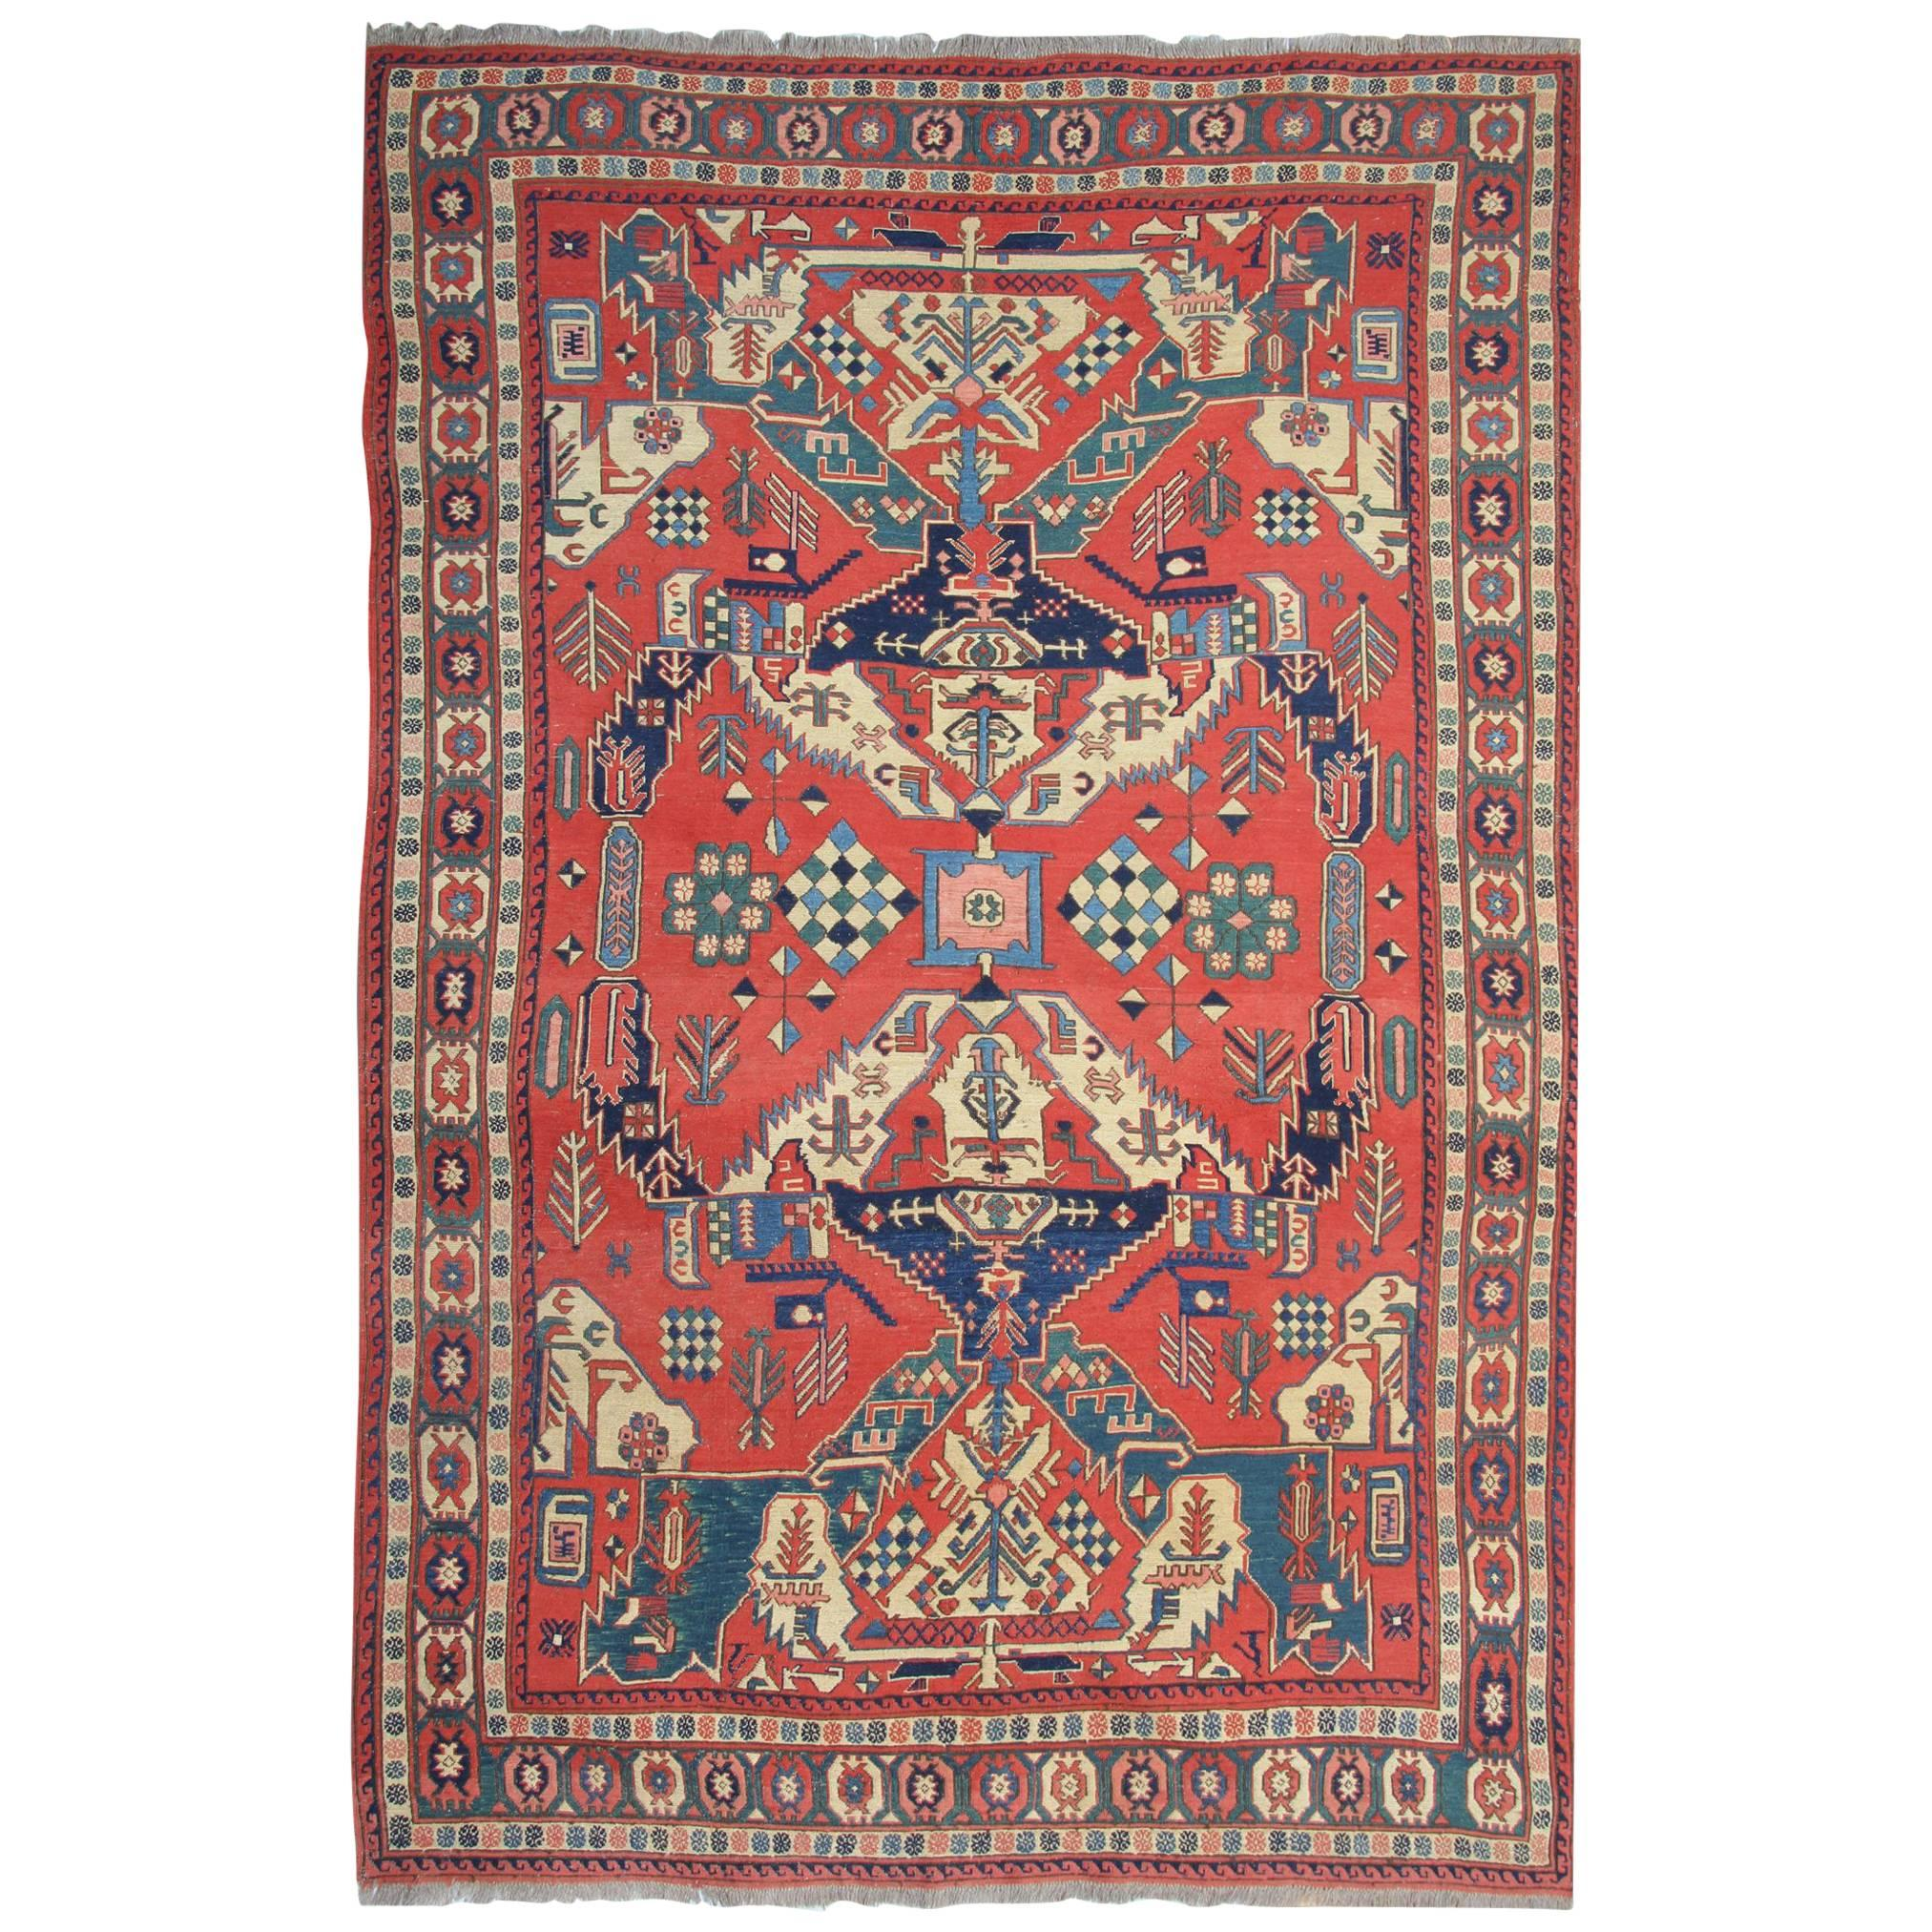 antique rugs, persian rugs, sumakh kilim rugs, carpet from iran for sale ZSCWMMF